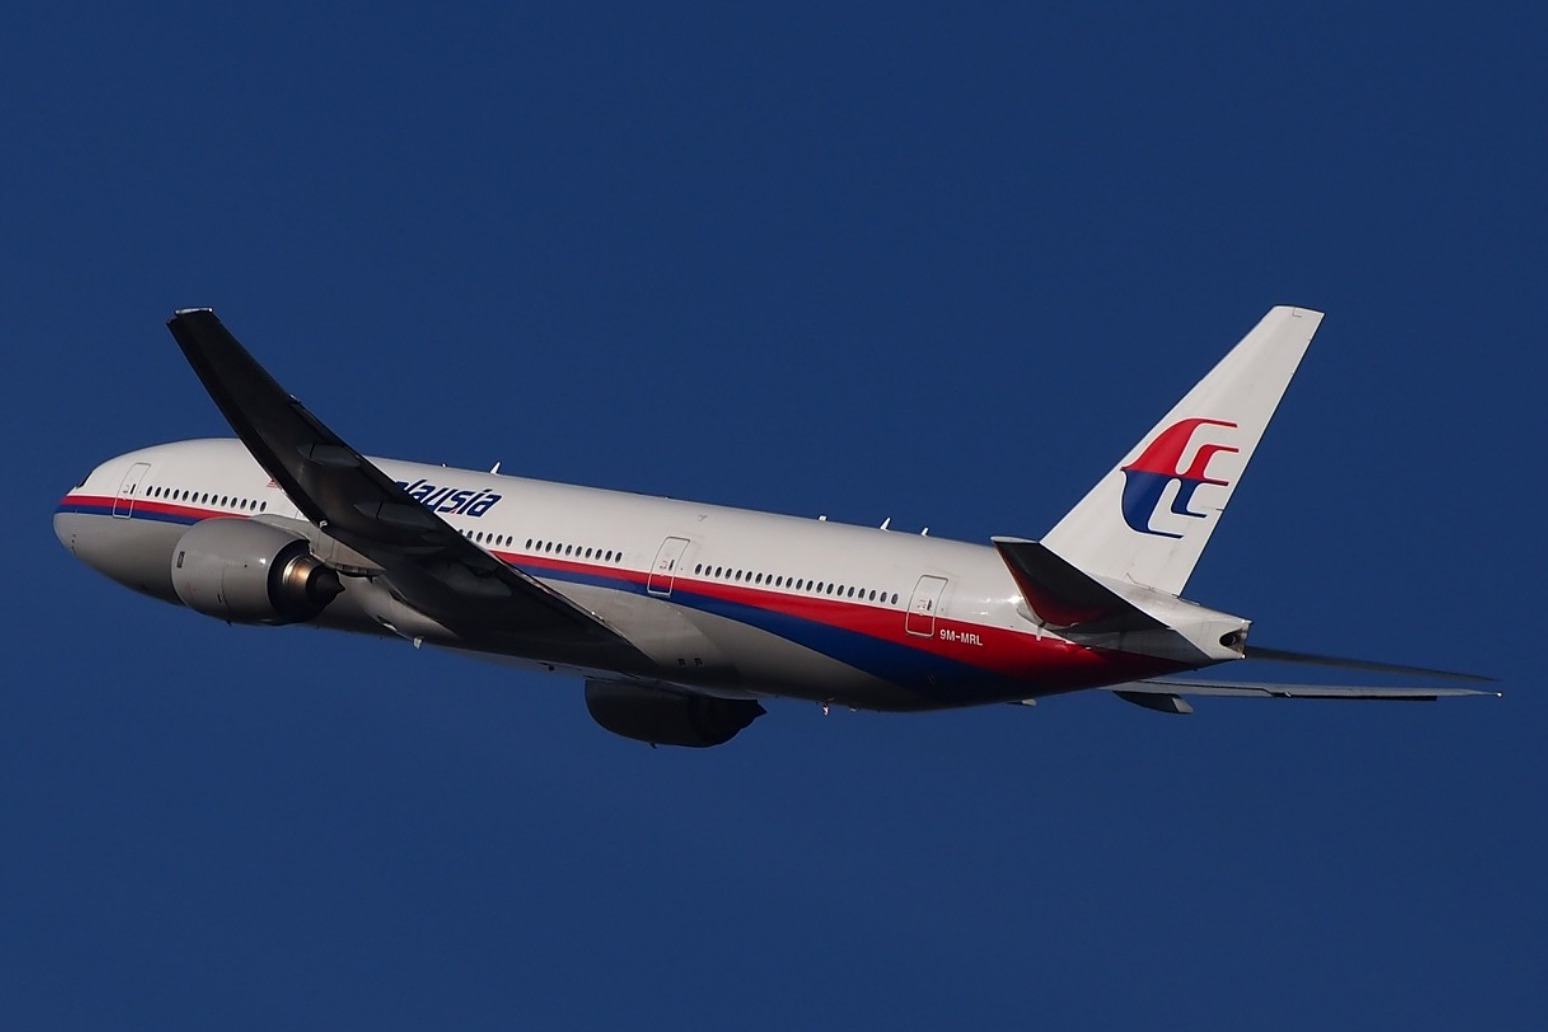 Search officially called off for missing Malaysian Airlines flight